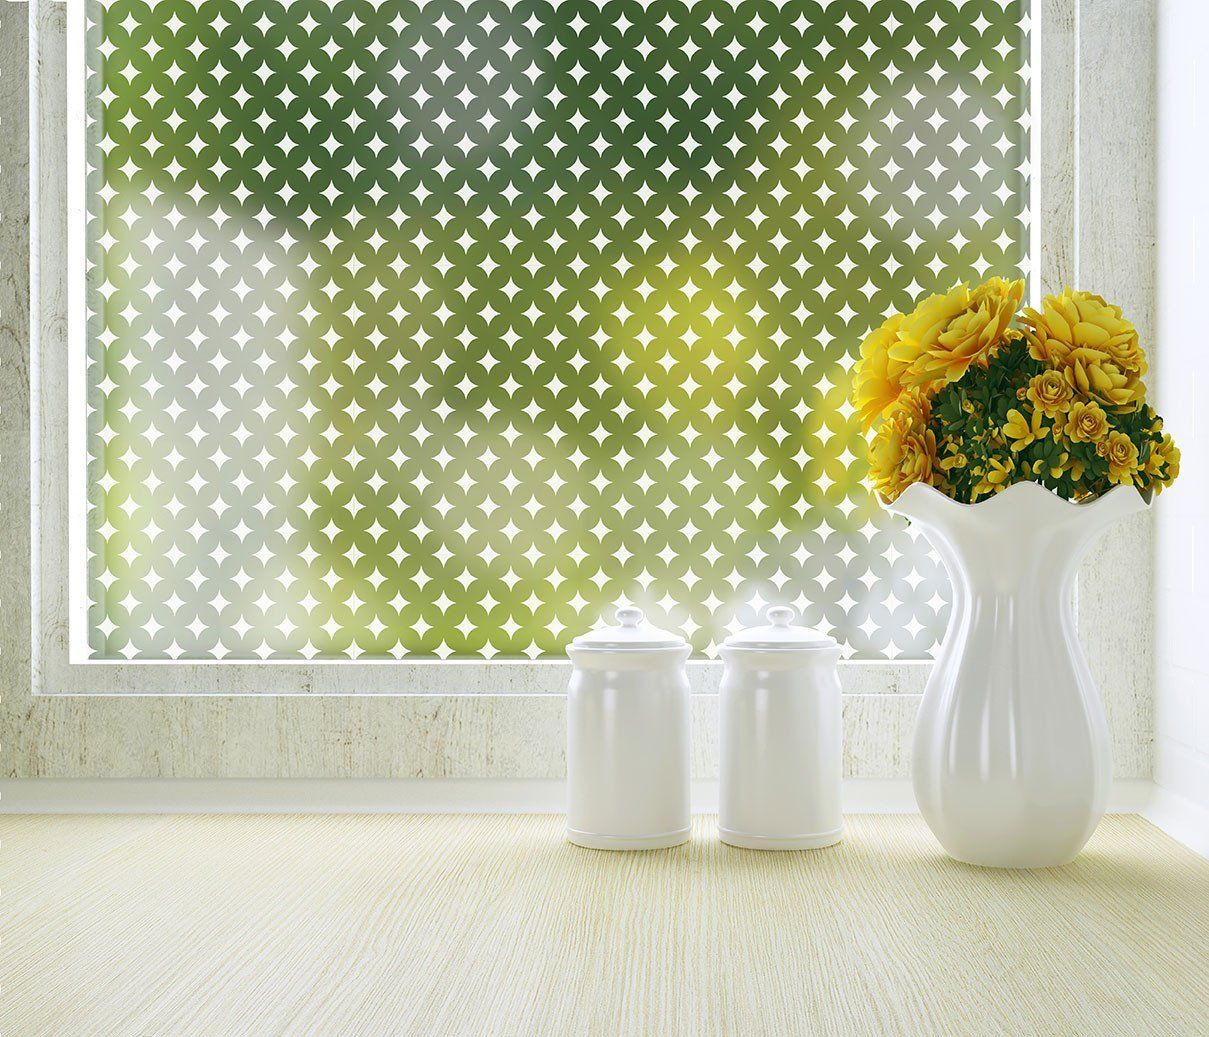 Window decor stickers  diamonds adhesive privacy film  x inch  for more information